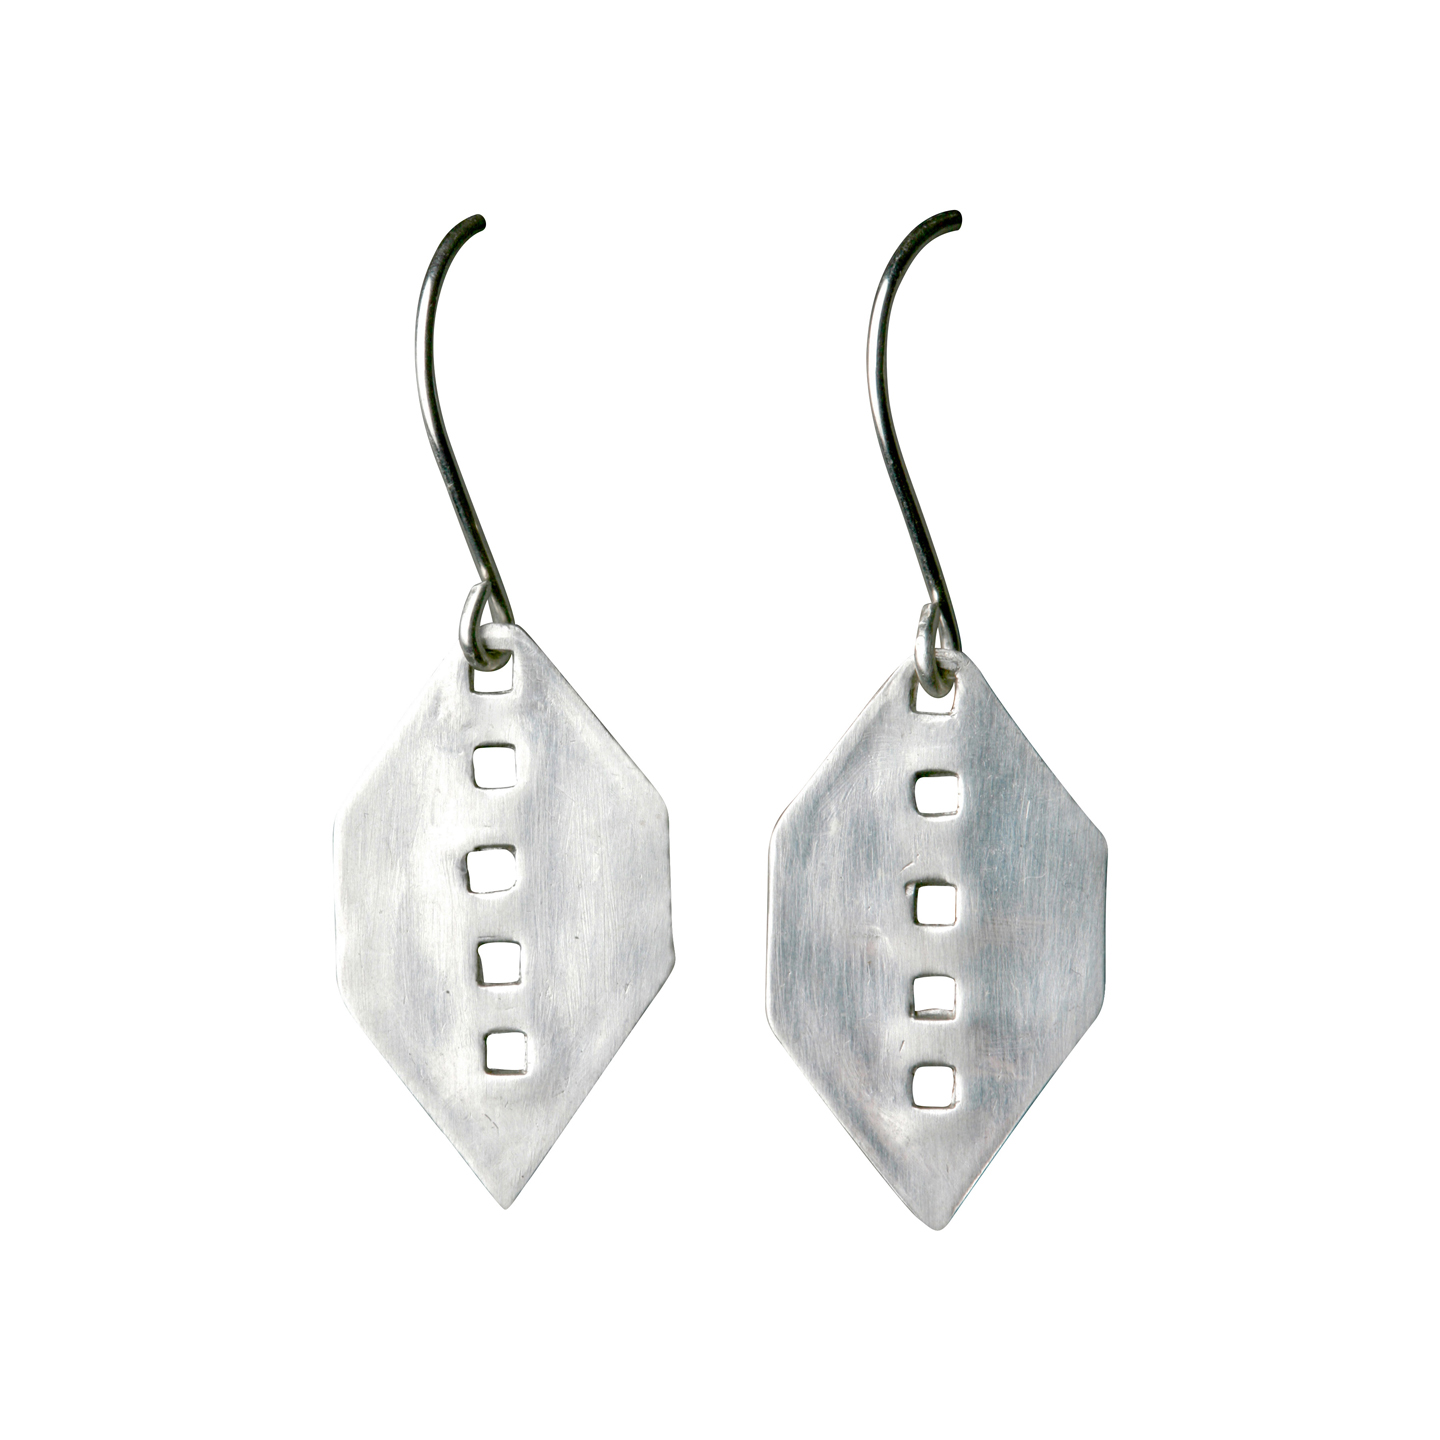 Geometric perforated earrings